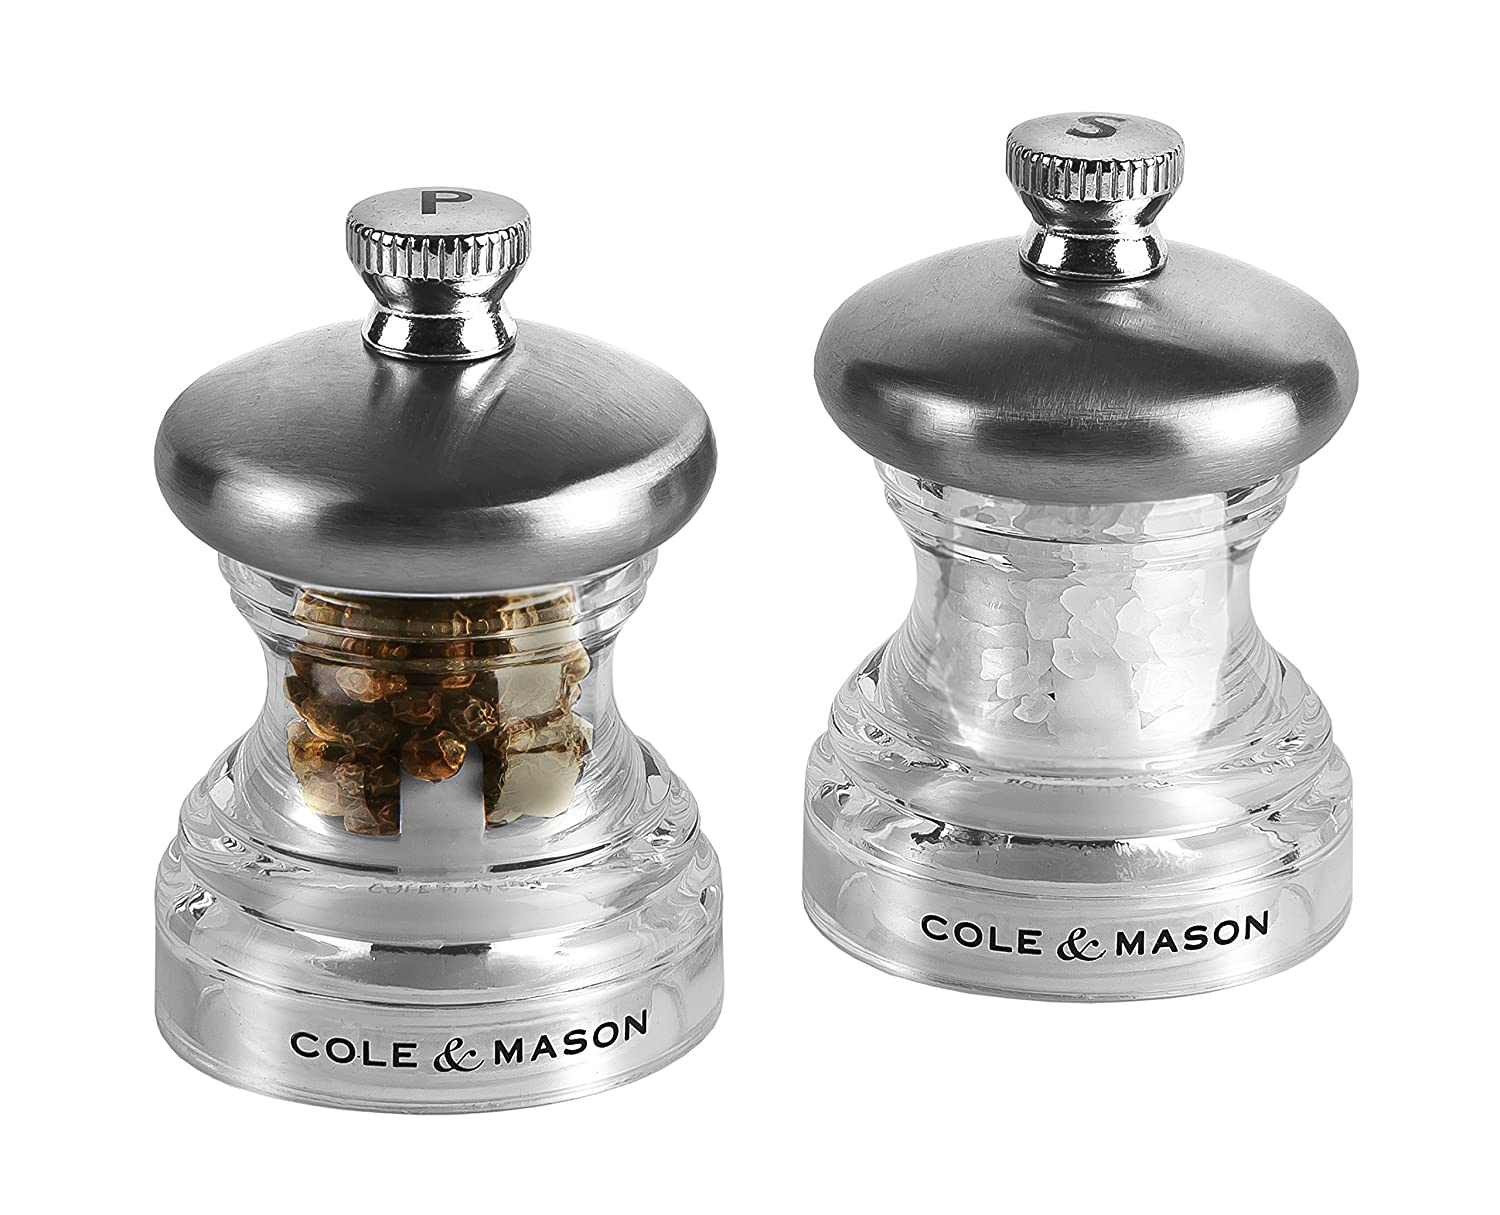 Cole & Mason Precision Grind Button Salt and Pepper Mill Gift Set, Acrylic and Stainless Steel/Clear, 6.5 cm DKB Household UK Ltd H302418